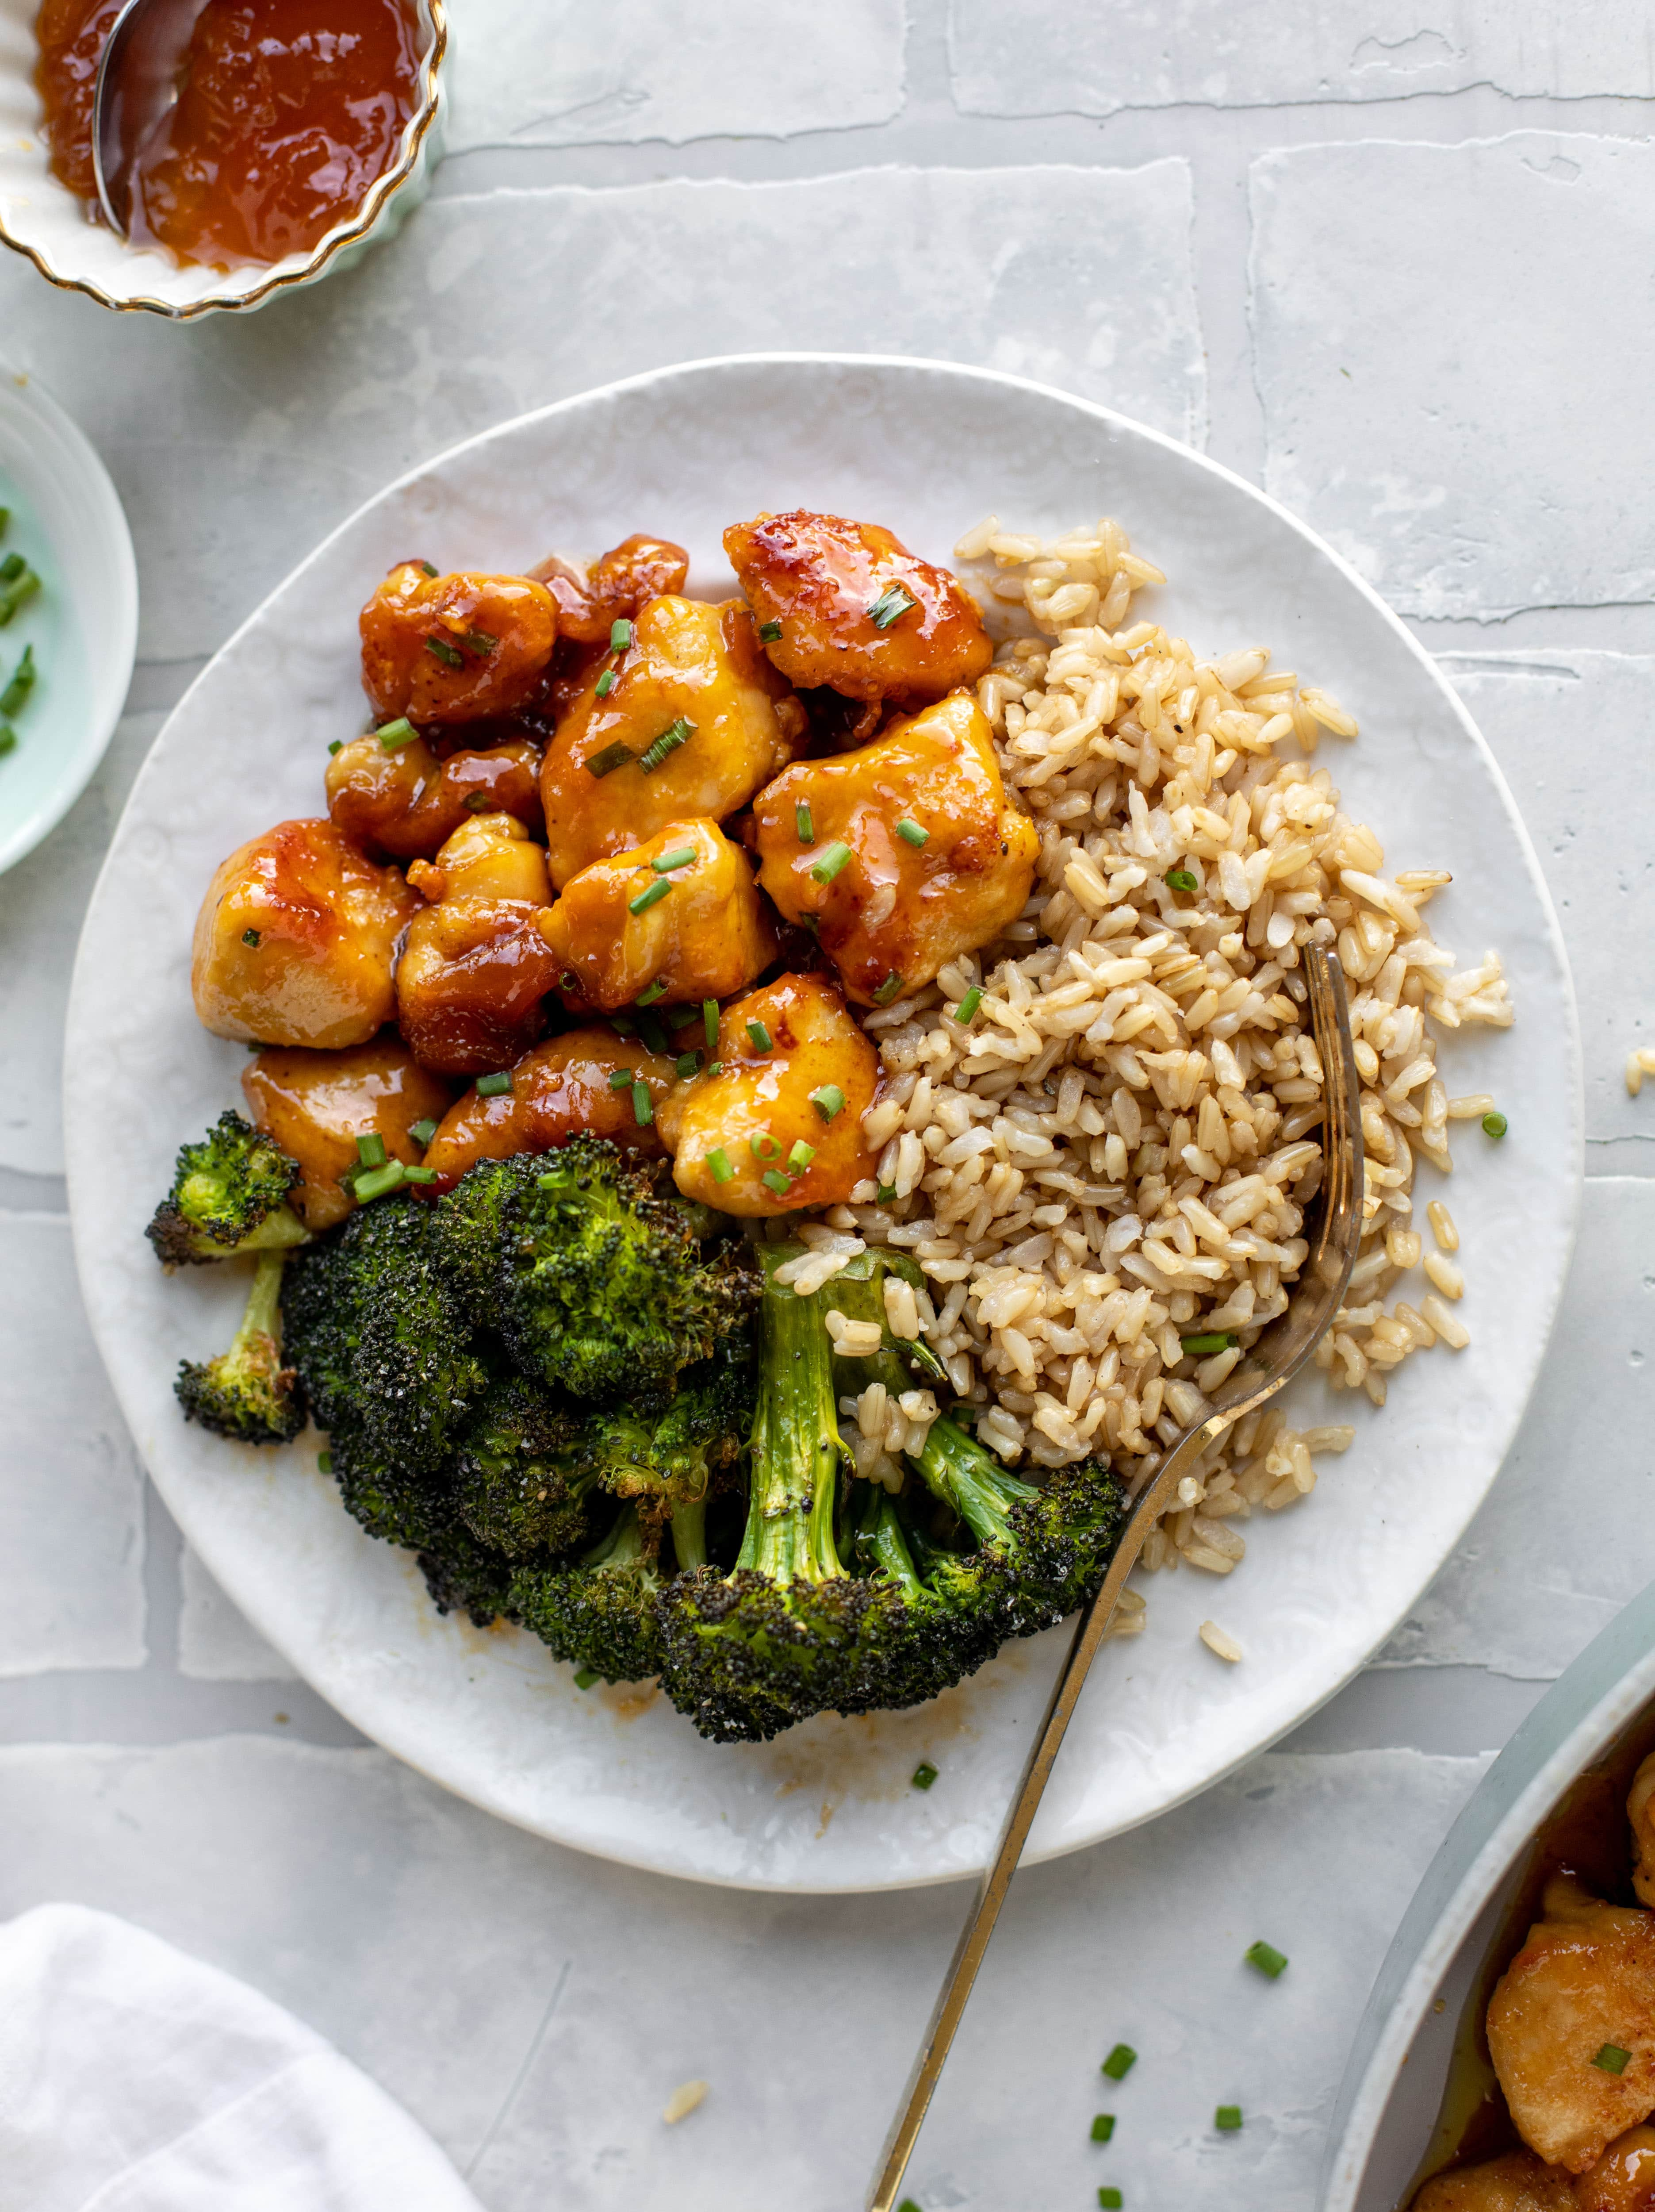 This sticky apricot chicken is so juicy and delicious! The chicken is seared and glazed with a jammy apricot sauce. Serve with broccoli and rice!